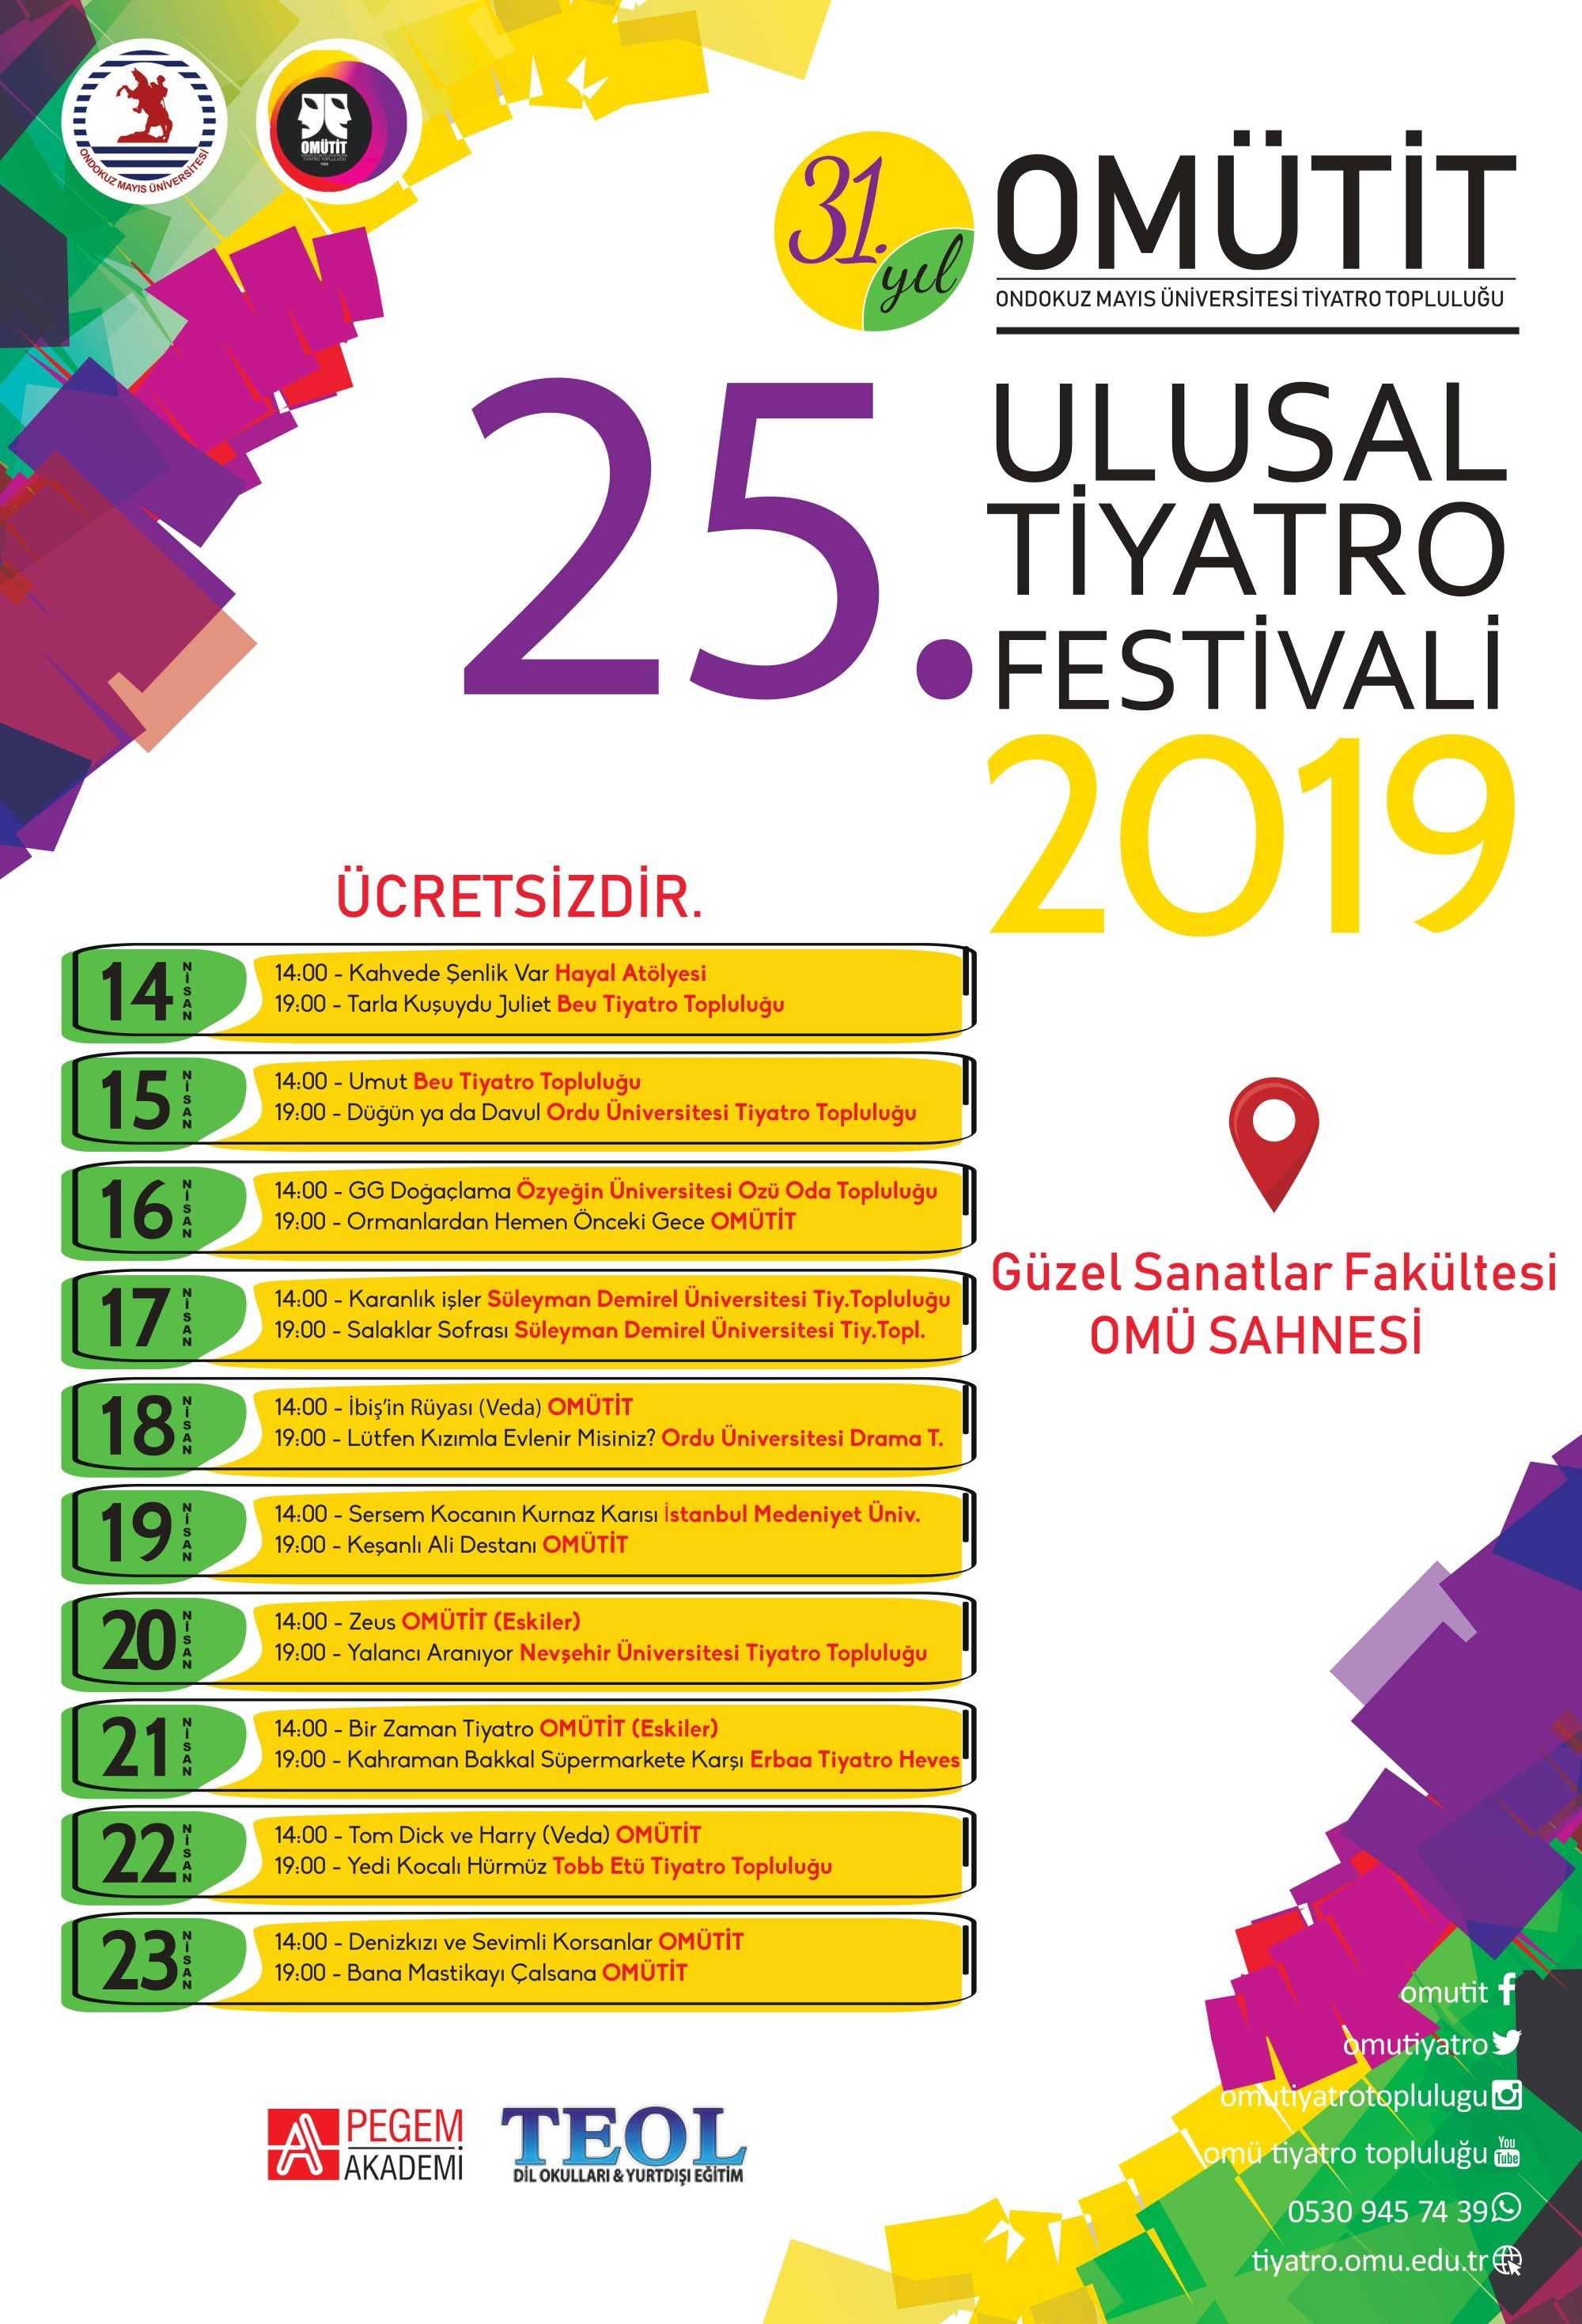 http://www.omu.edu.tr/sites/default/files/25ulusaltiyatrofestivali2019_afis_resize.jpg